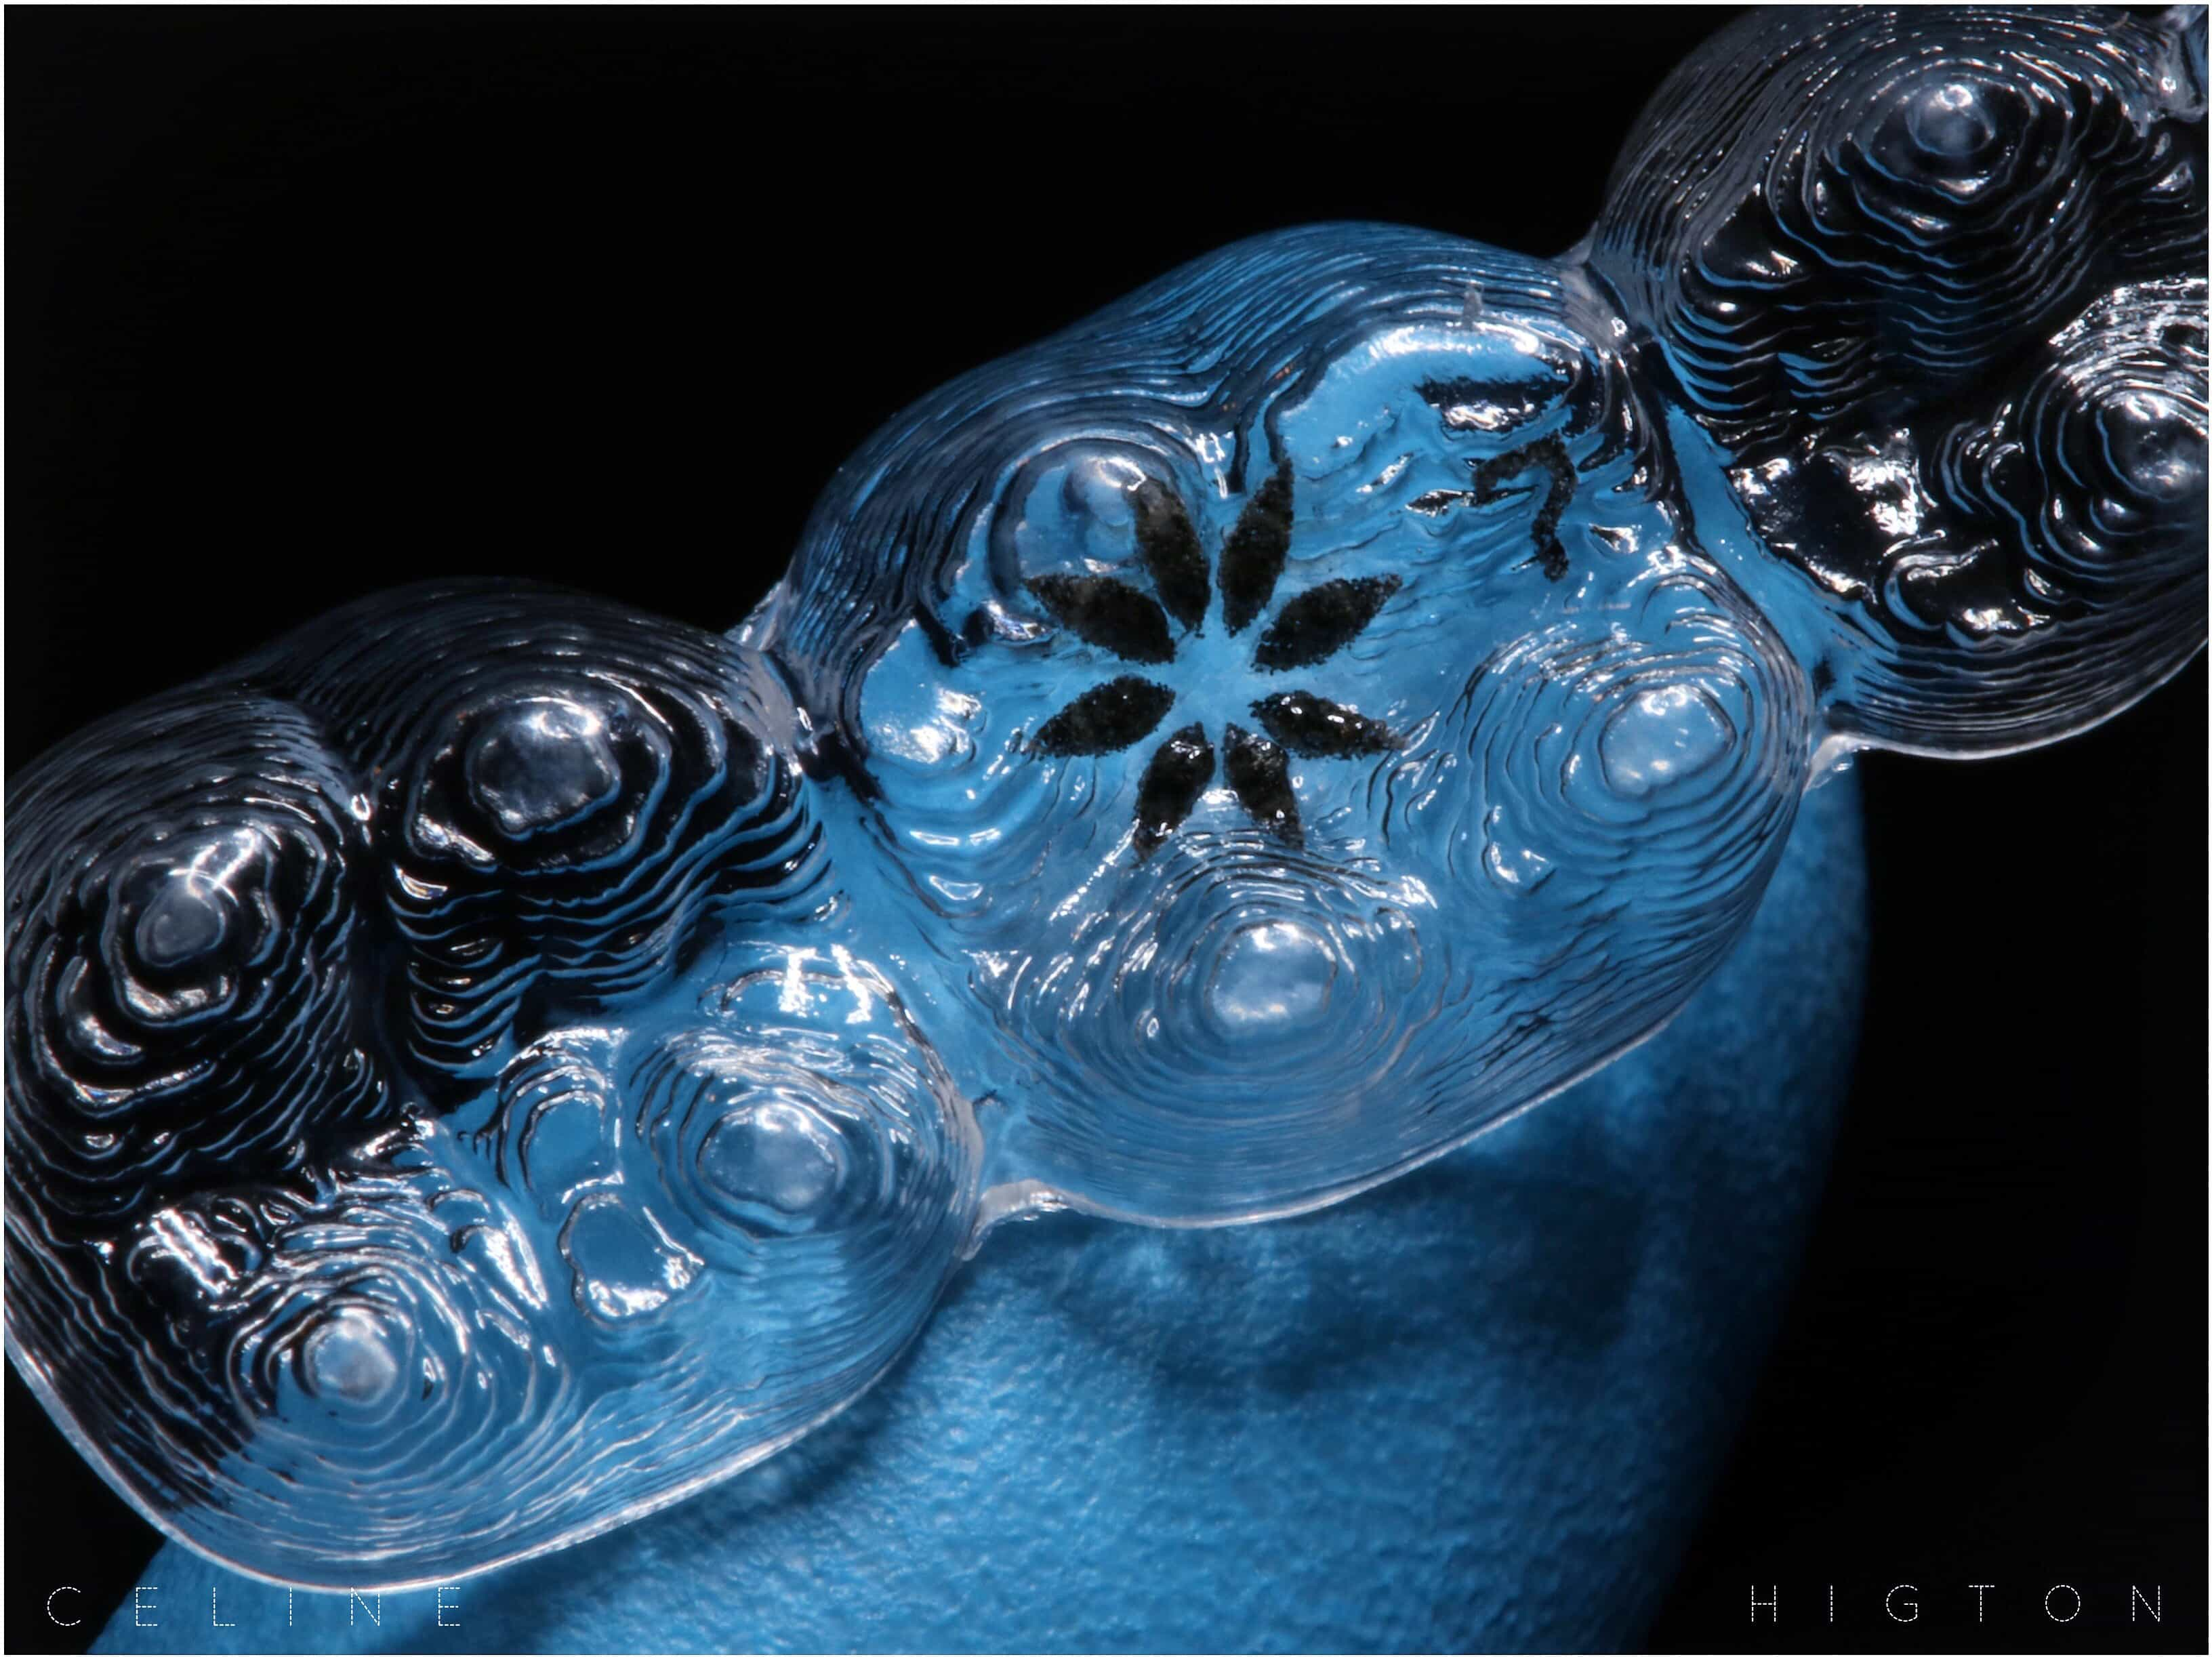 Photograph Of Invisalign Aligner By Dr Celine Higton At Beverley Dental Raynes Park London